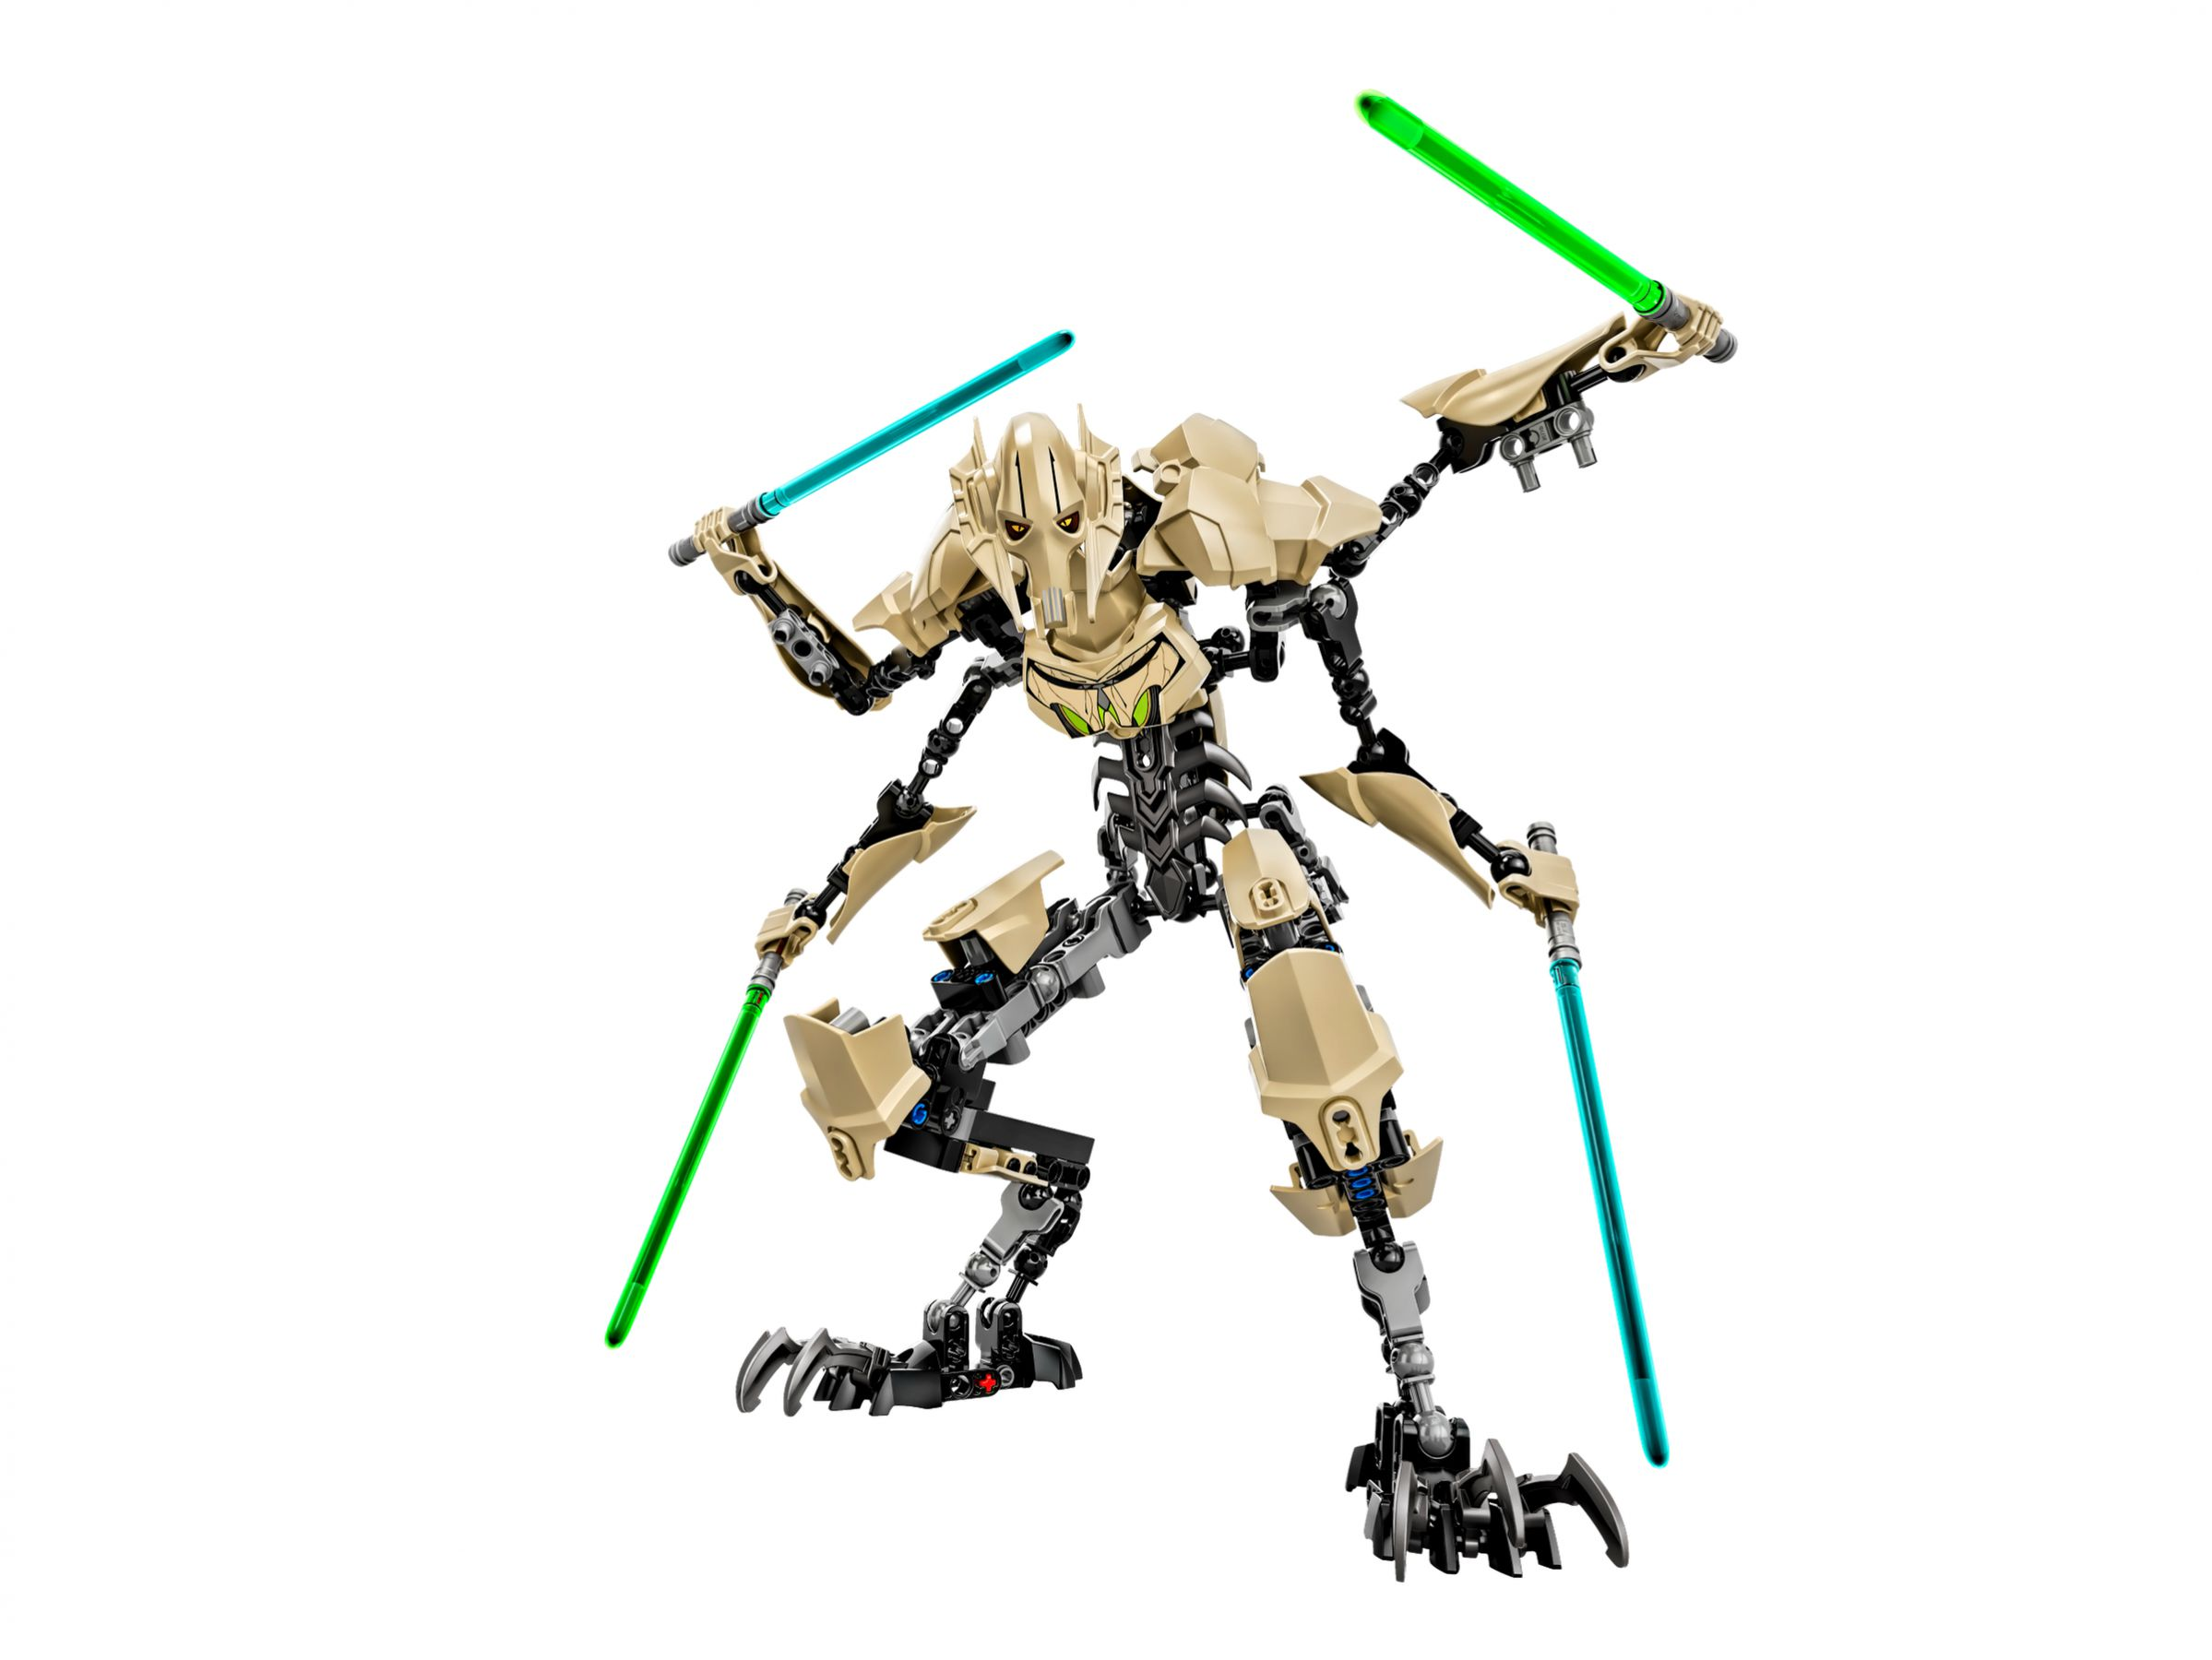 LEGO Star Wars Buildable Figures 75112 General Grievous™ LEGO_75112.jpg